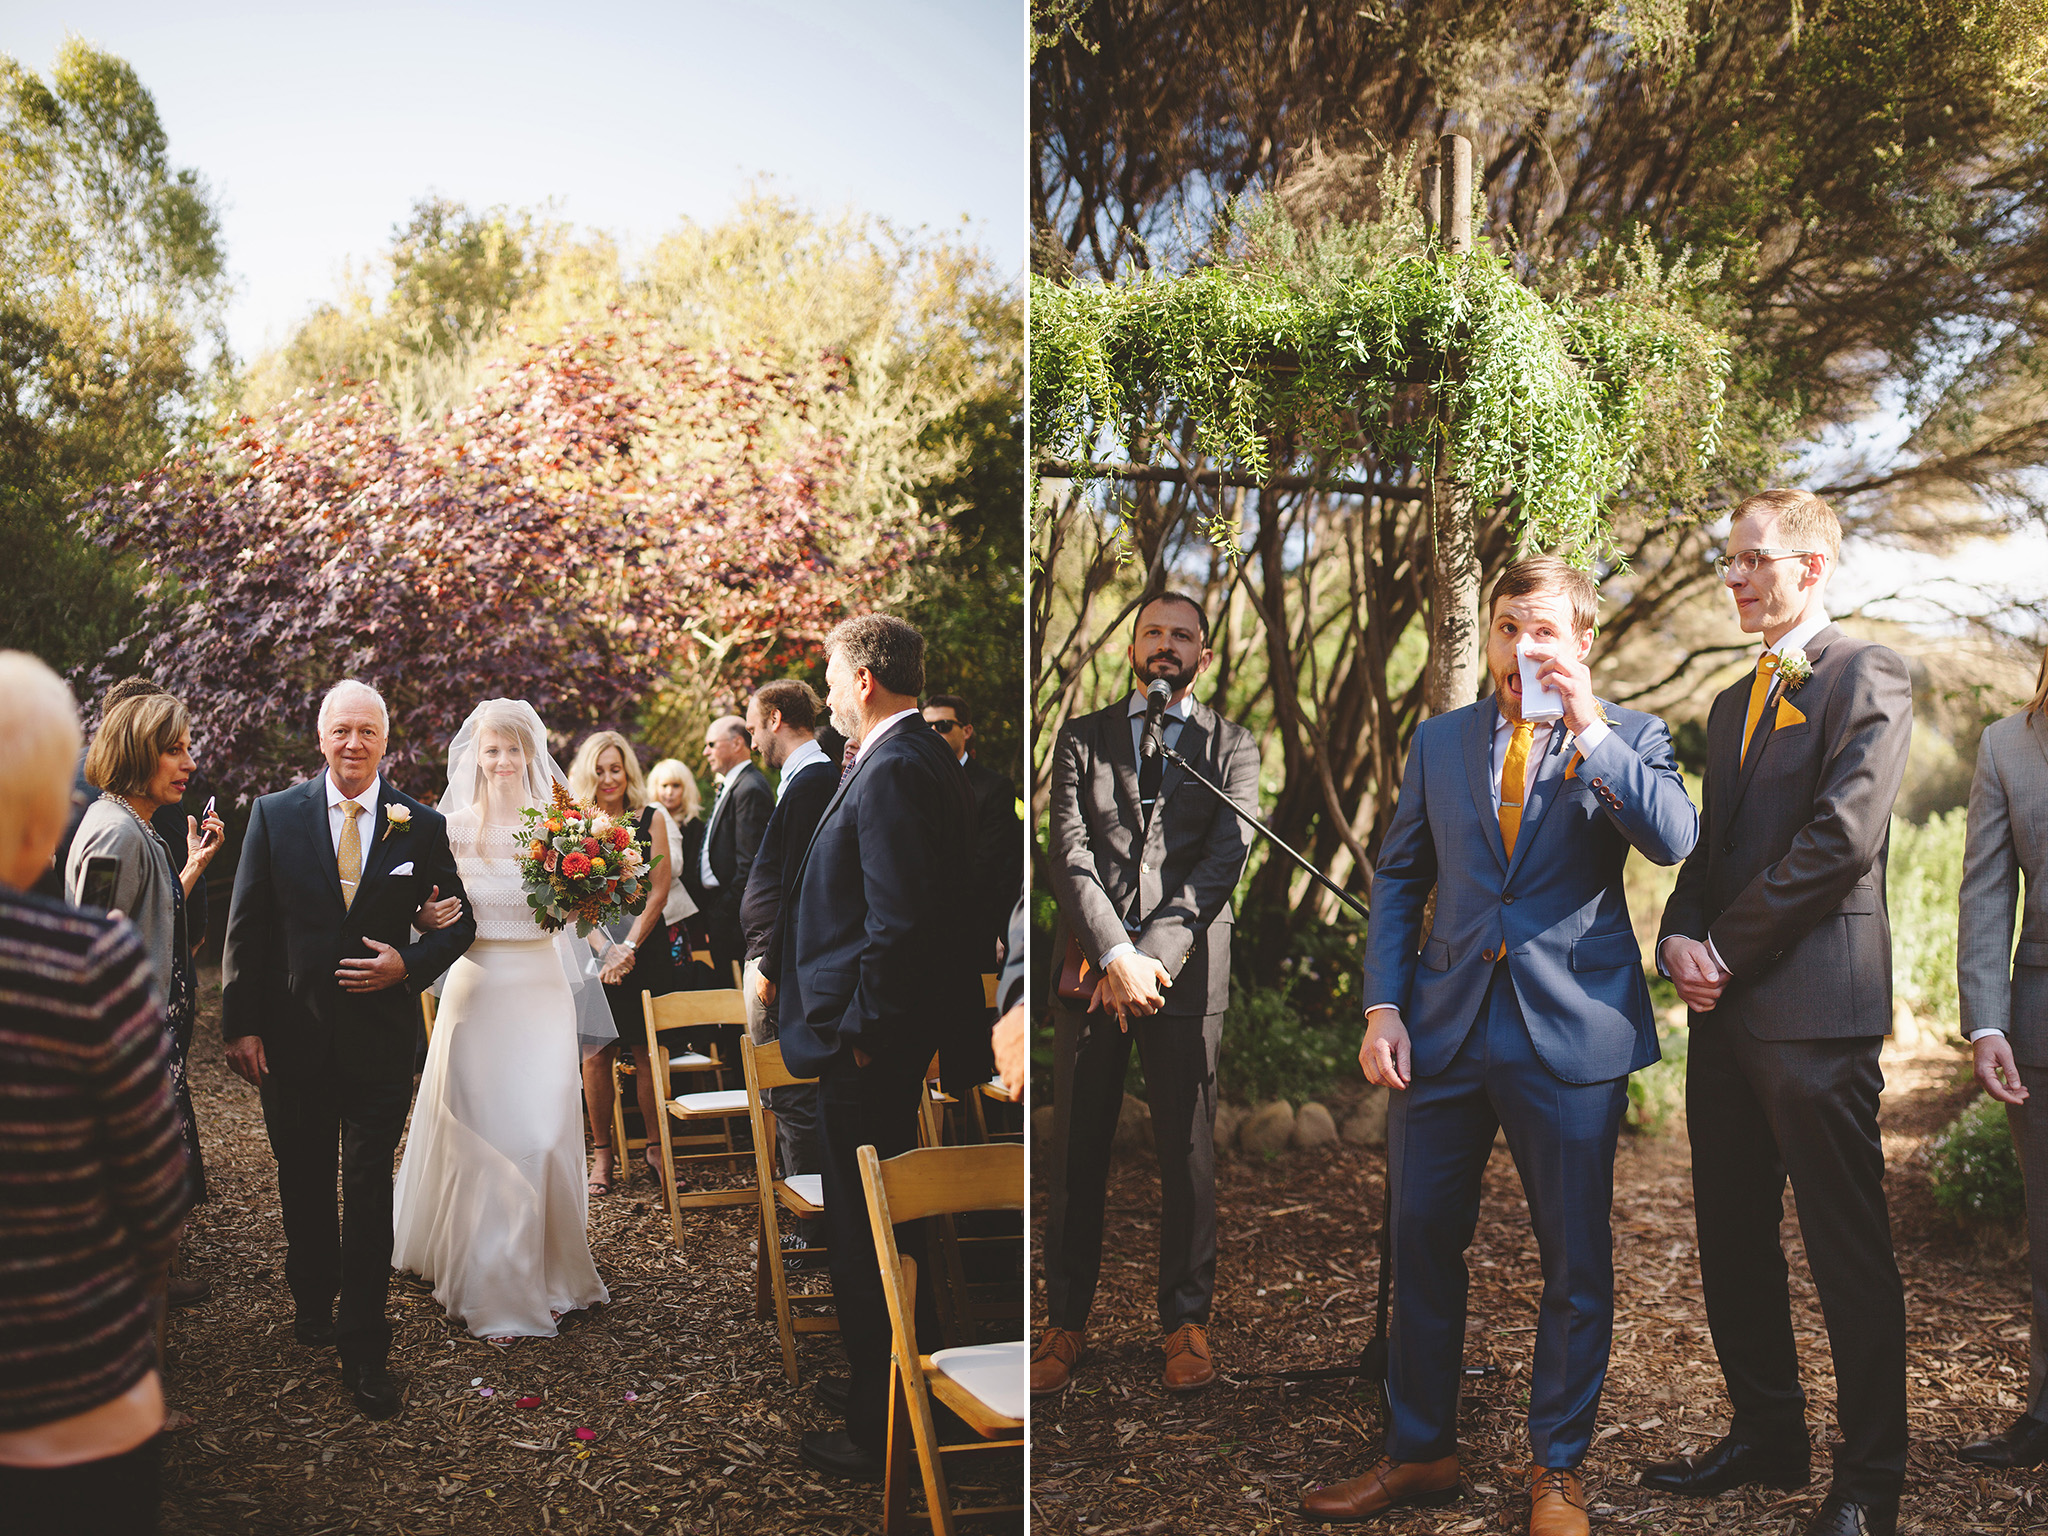 Pescadero California wedding at Harley goat farm